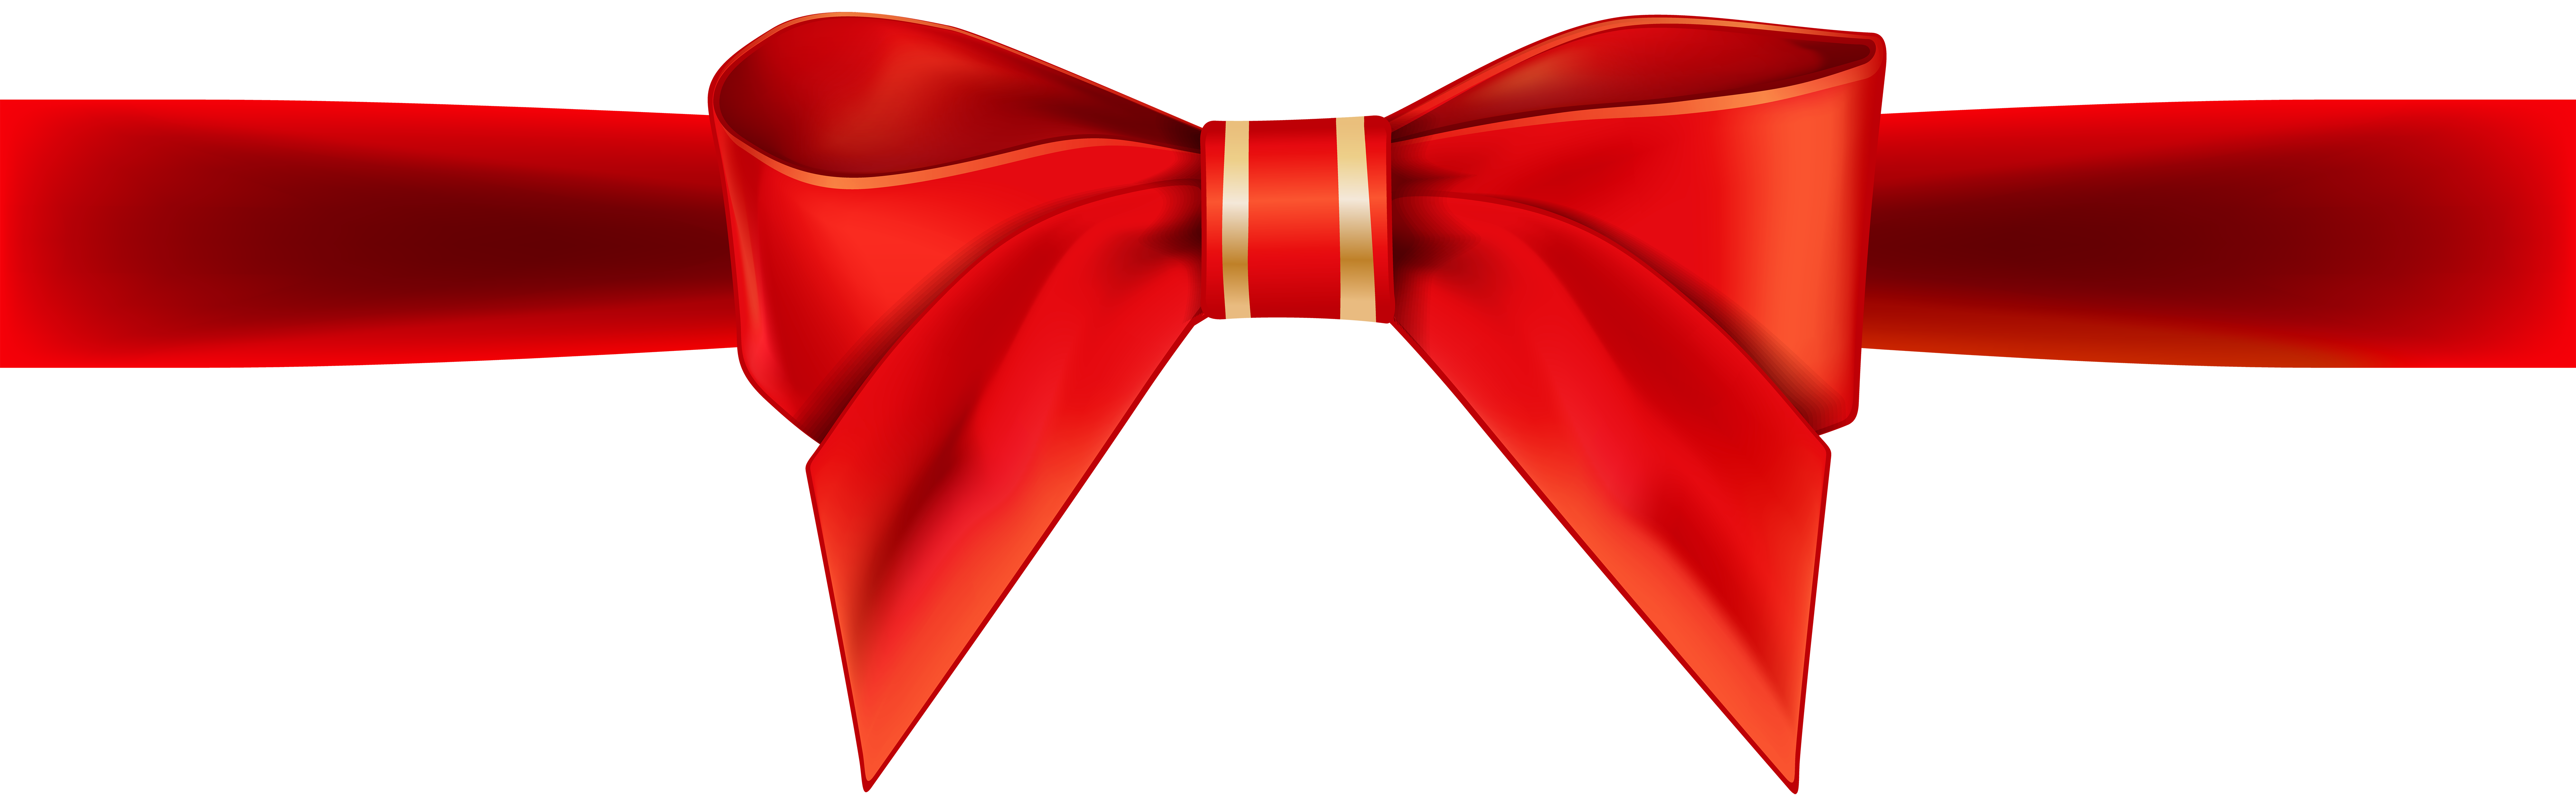 png library library Red Ribbon Bow Transparent PNG Clip Art Image